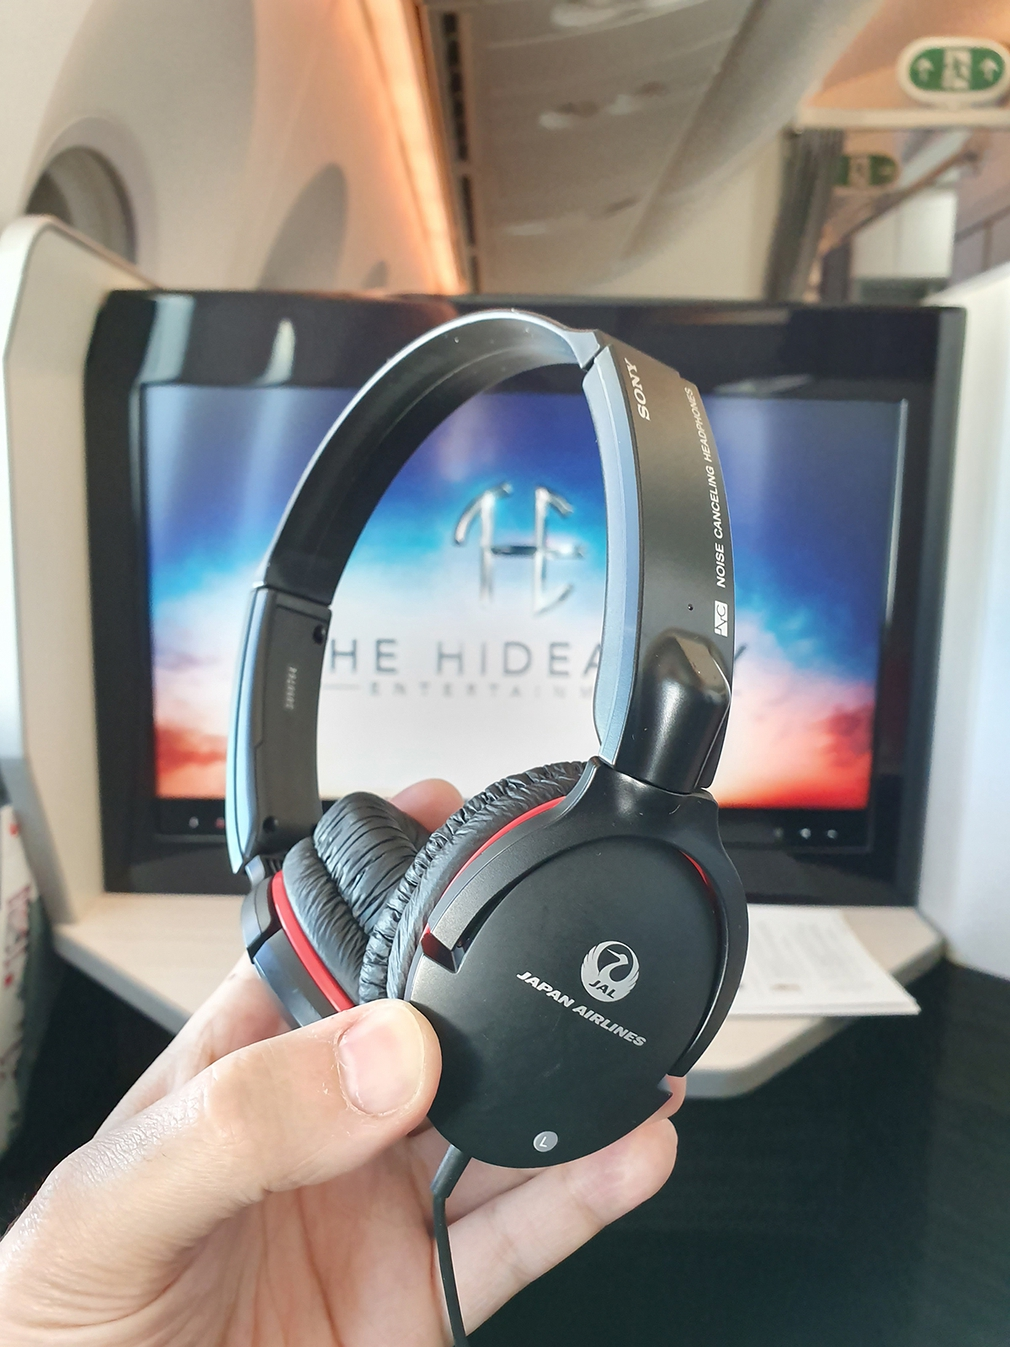 Japan Airlines standard issue headphones